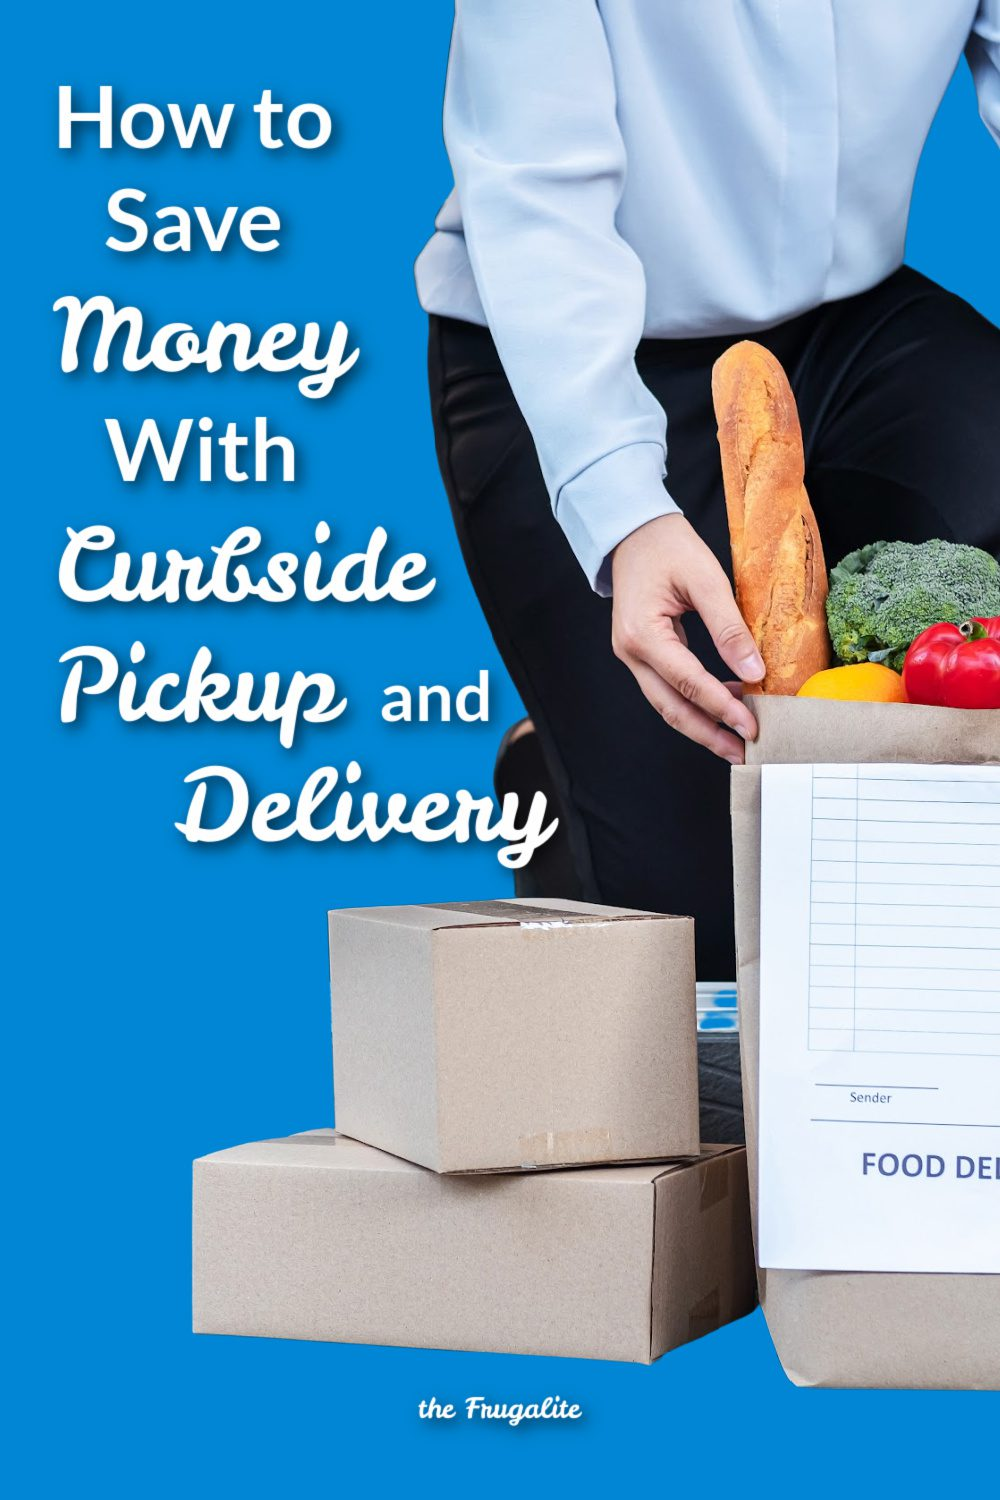 How to Save Money with Curbside Pickup and Delivery (Really)